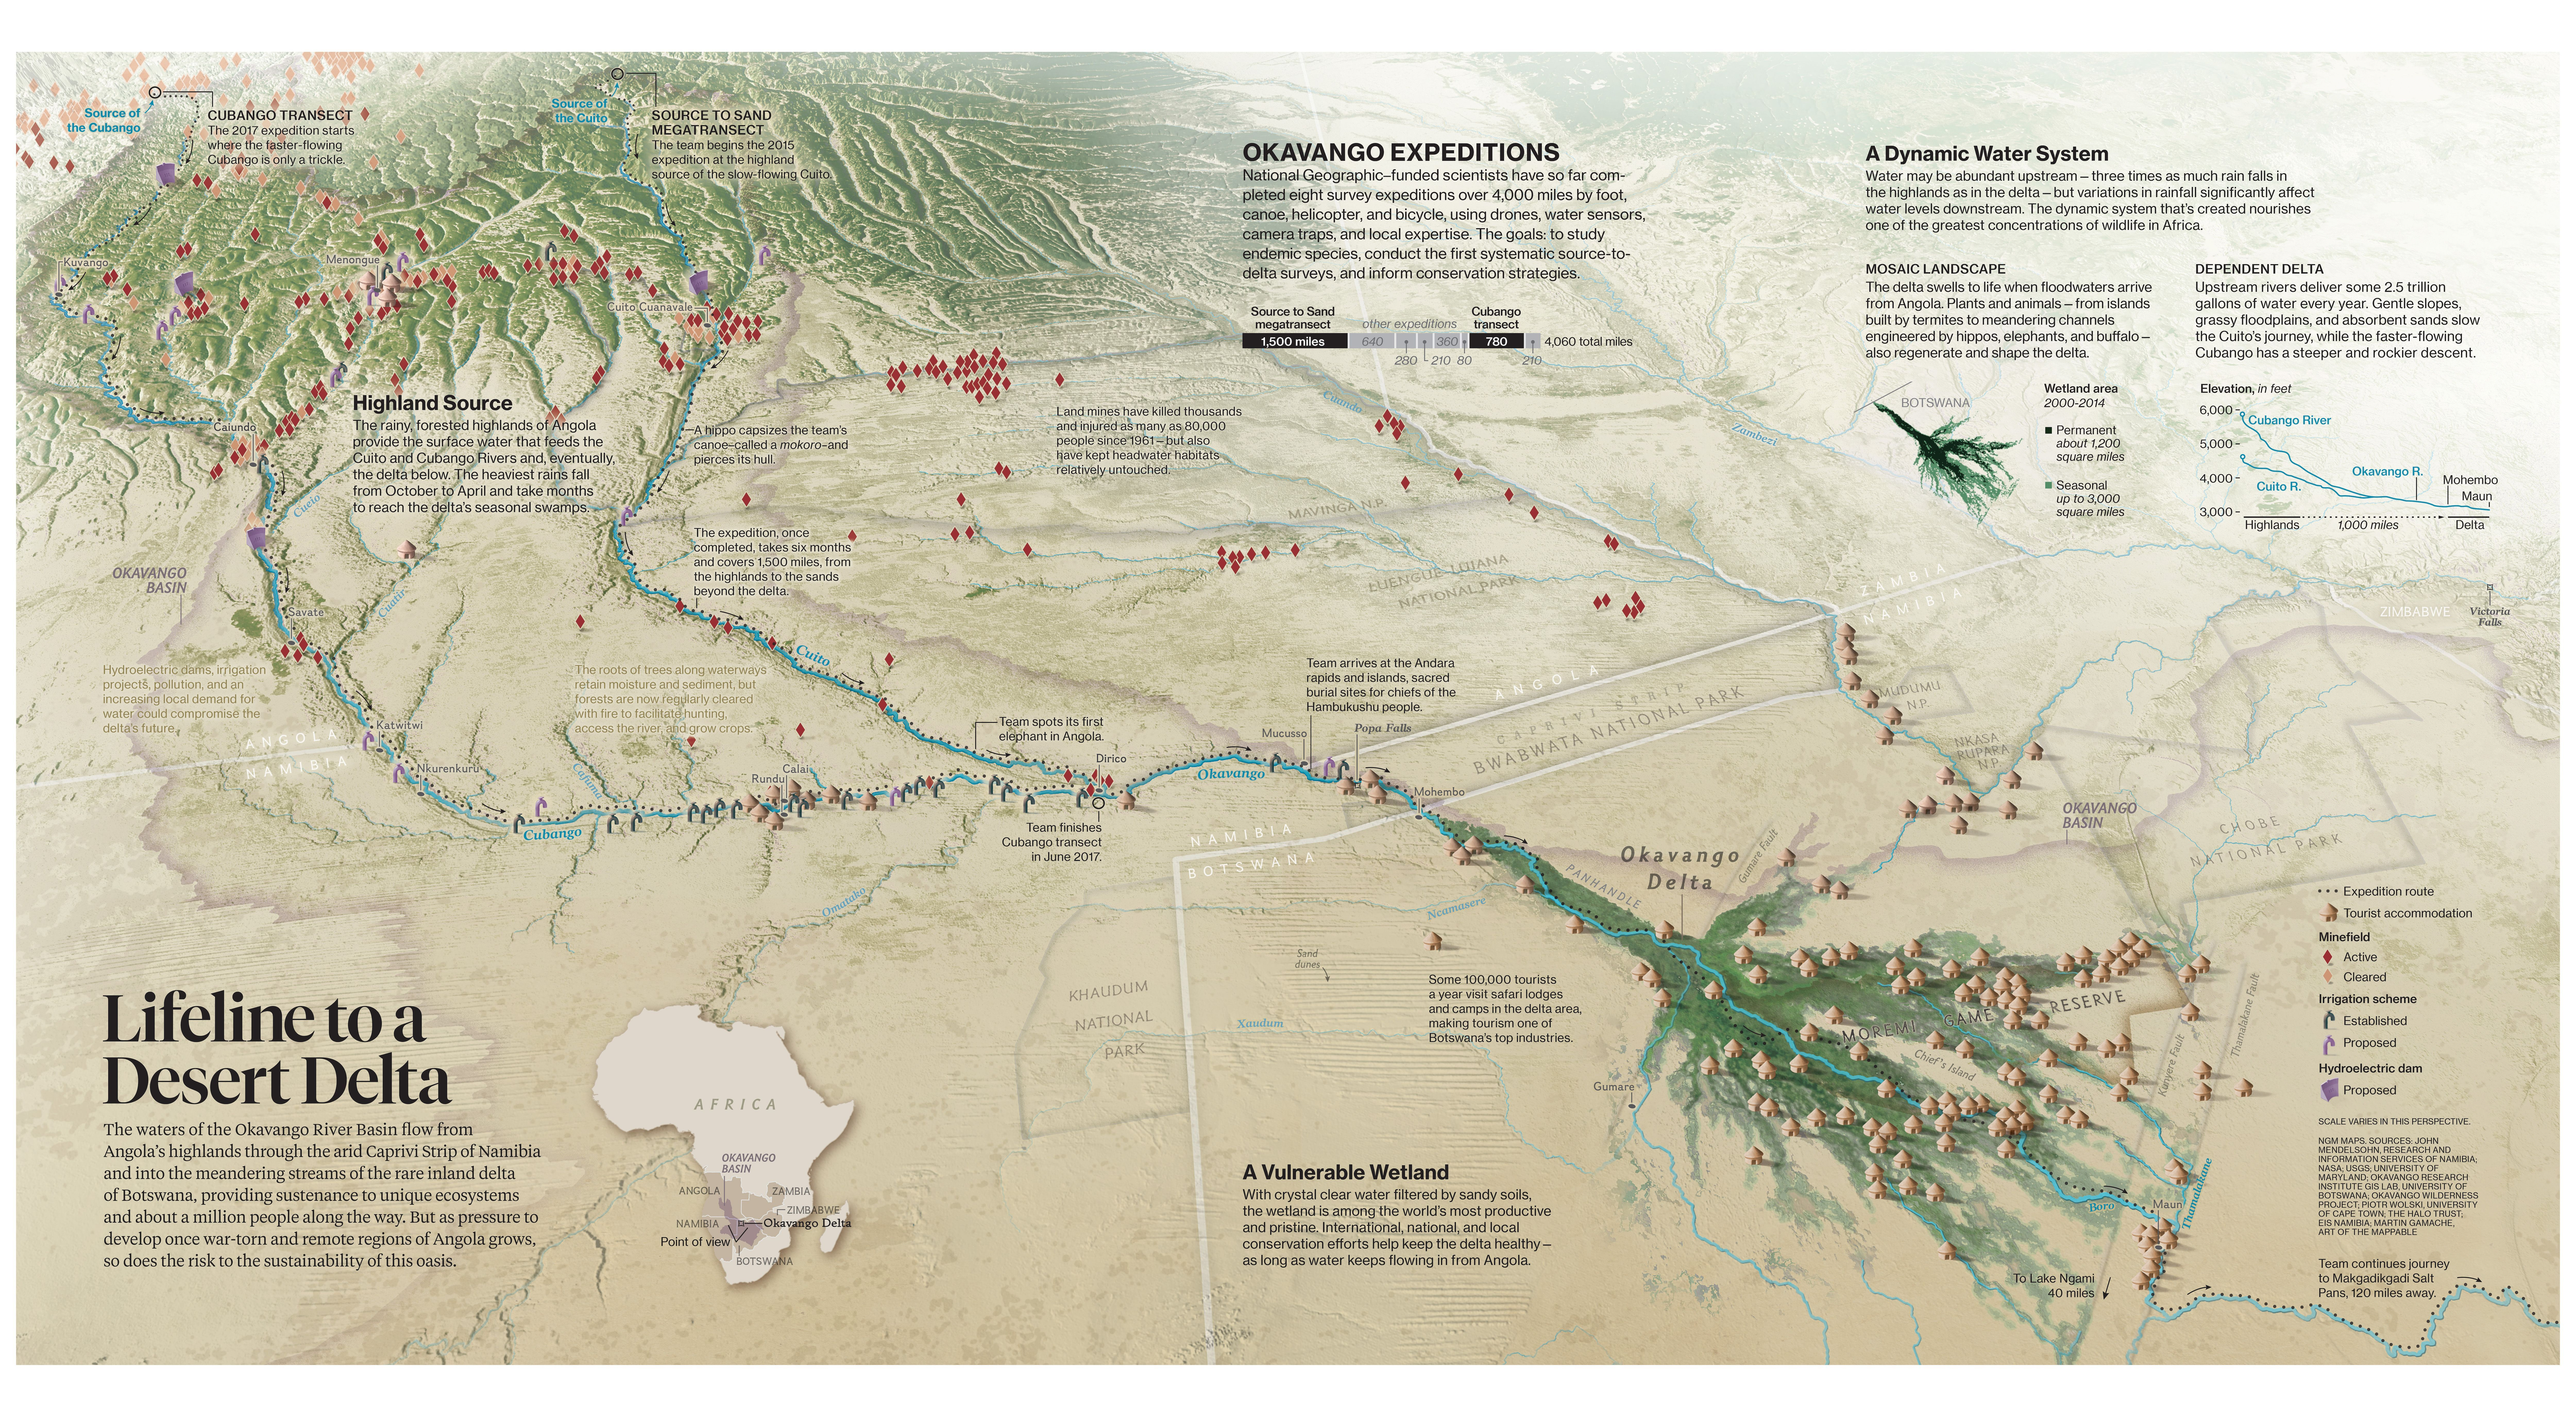 Lifeline to a Desert Delta | National Geographic Society